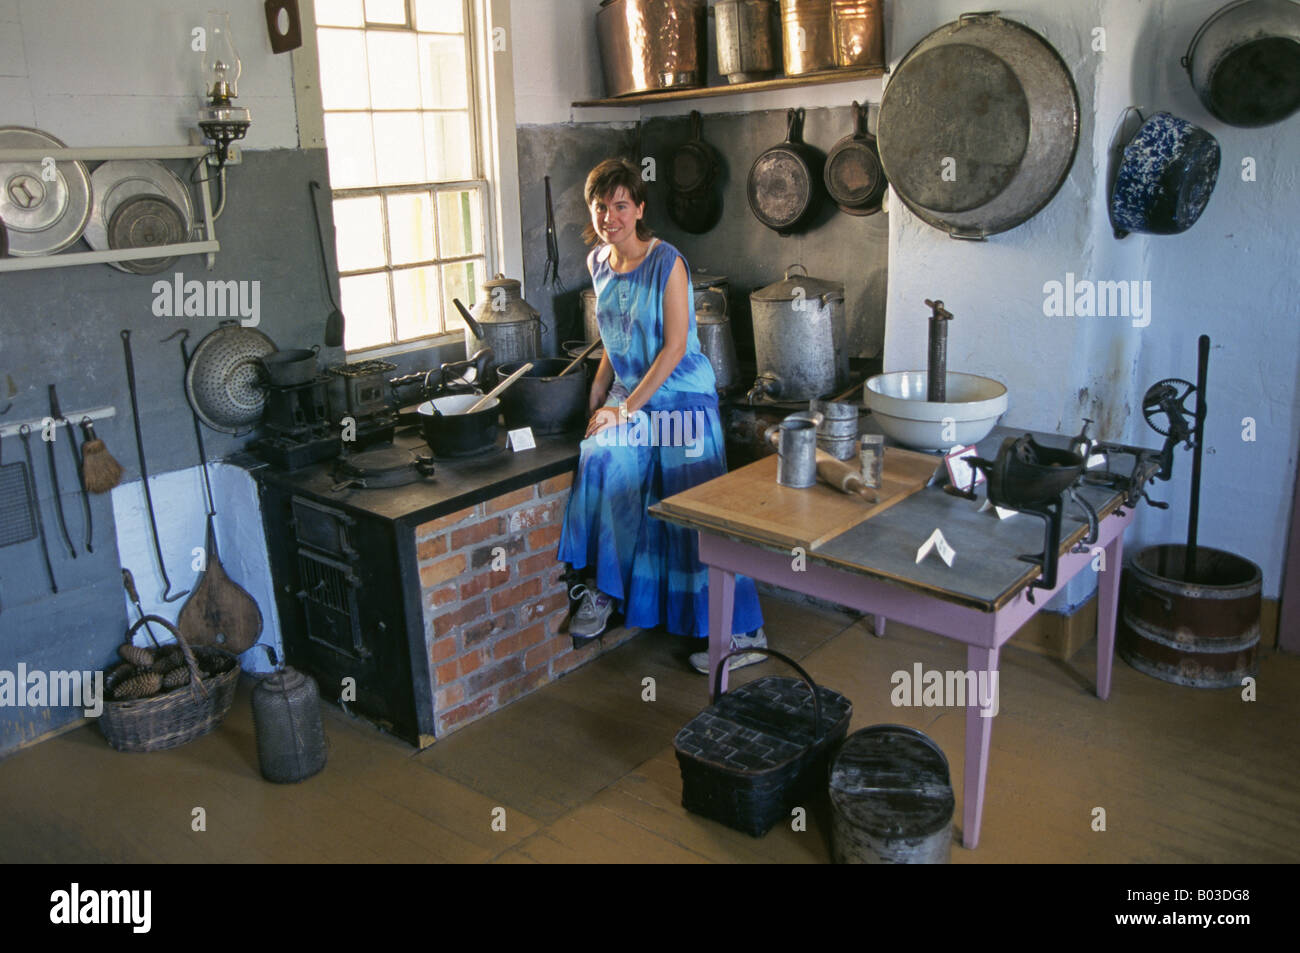 A traditional farm kitchen in a local museum in the Amana Colonies ...